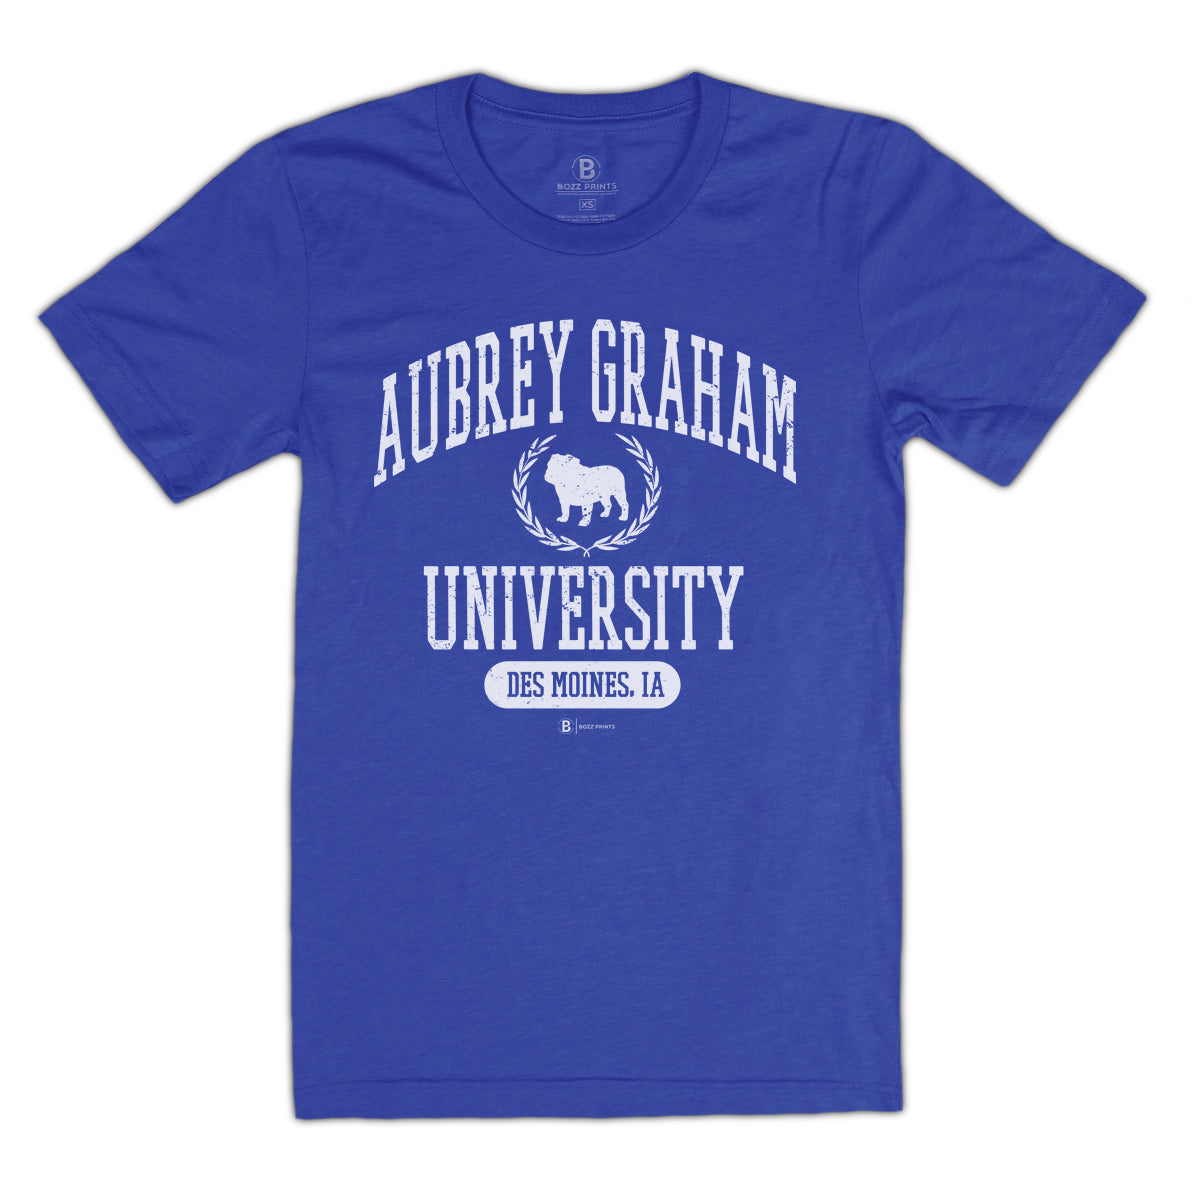 Aubrey Graham University T-Shirt